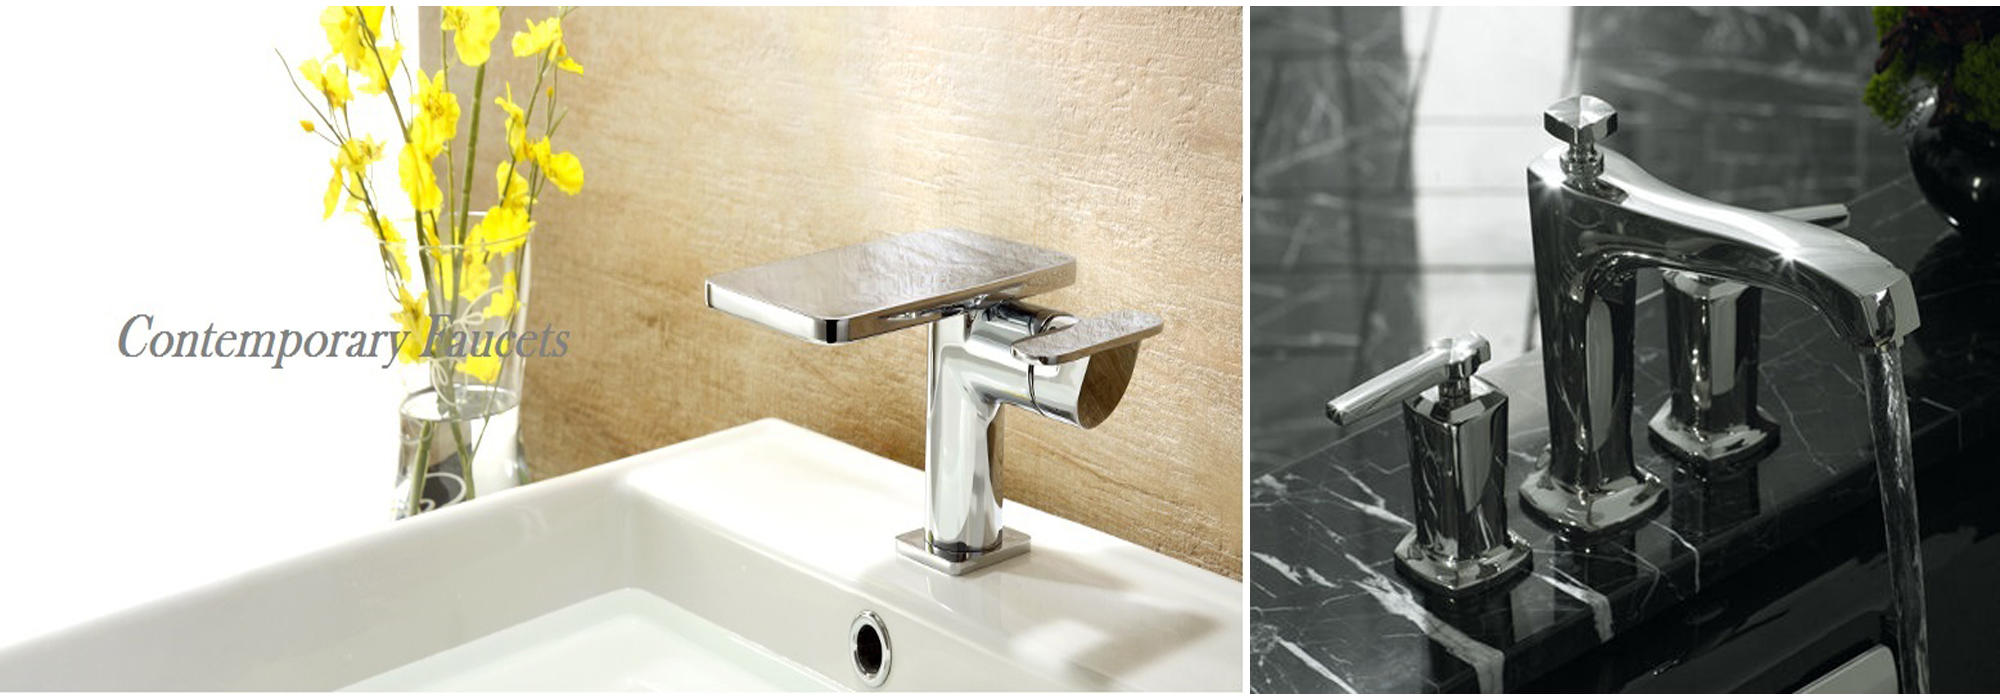 Fontana Contemporary Faucets